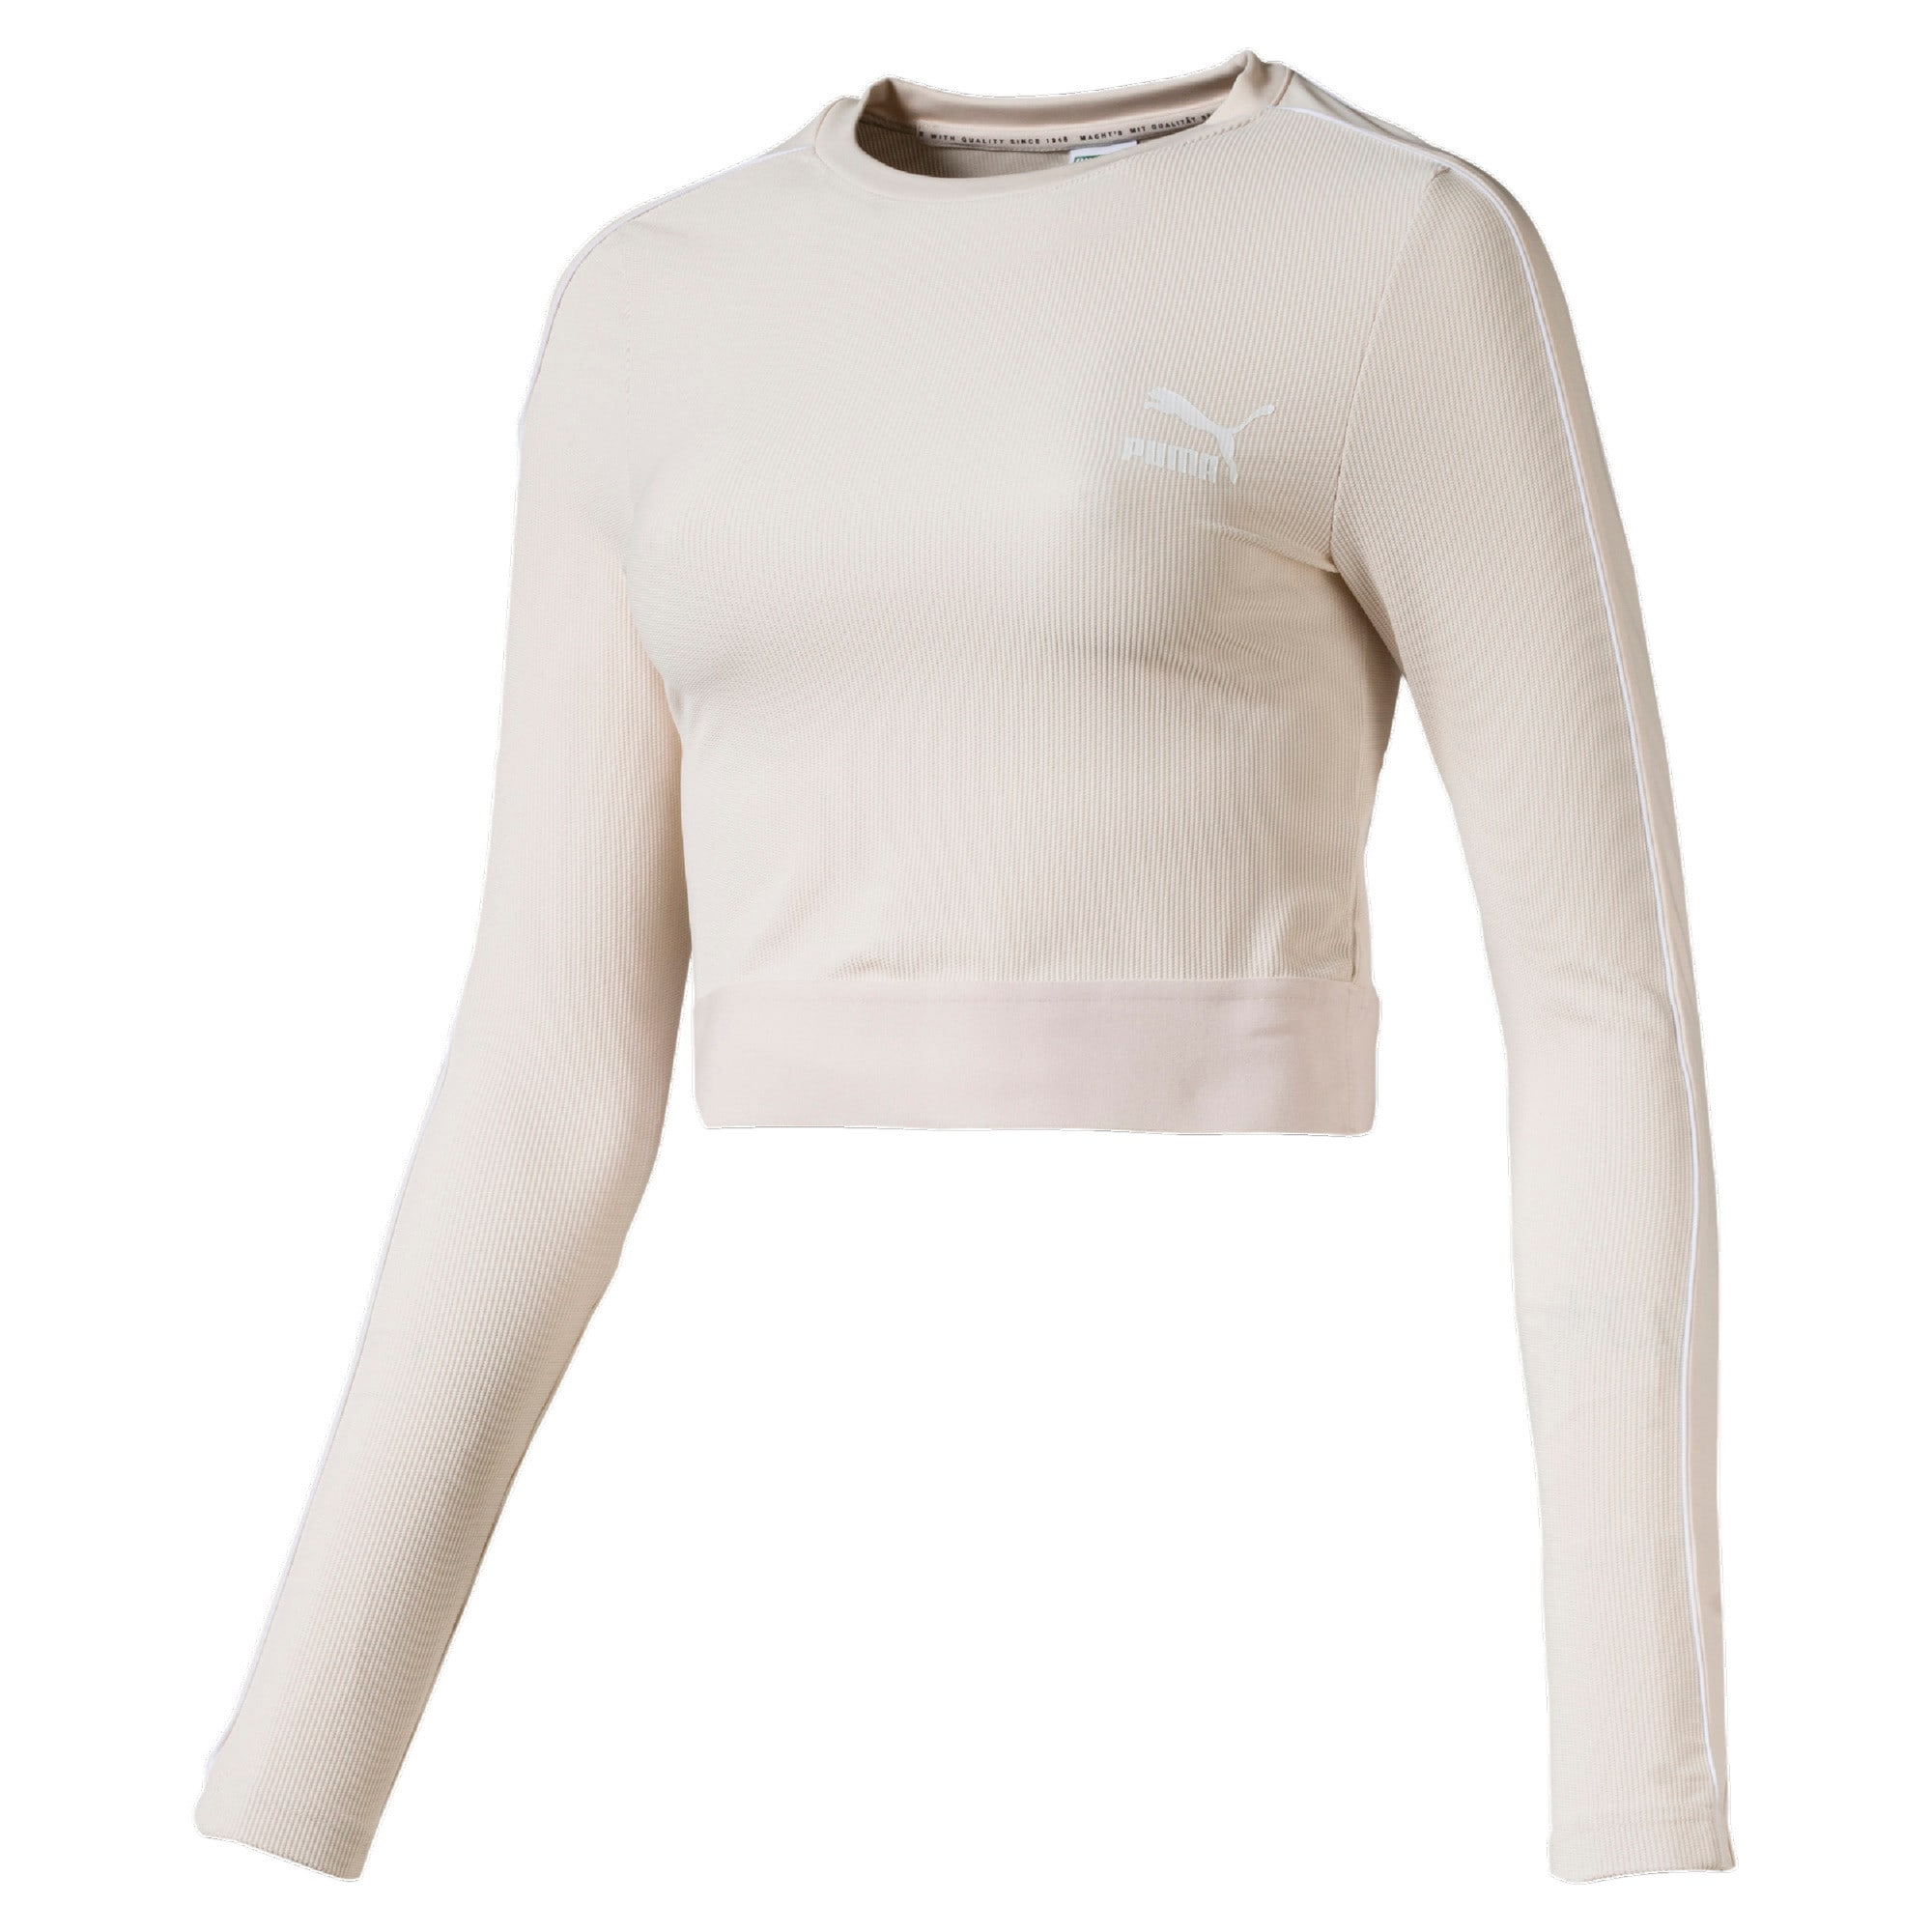 Thumbnail 4 of Classics Rib Cropped Long Sleeve Women's Top, Pastel Parchment, medium-SEA